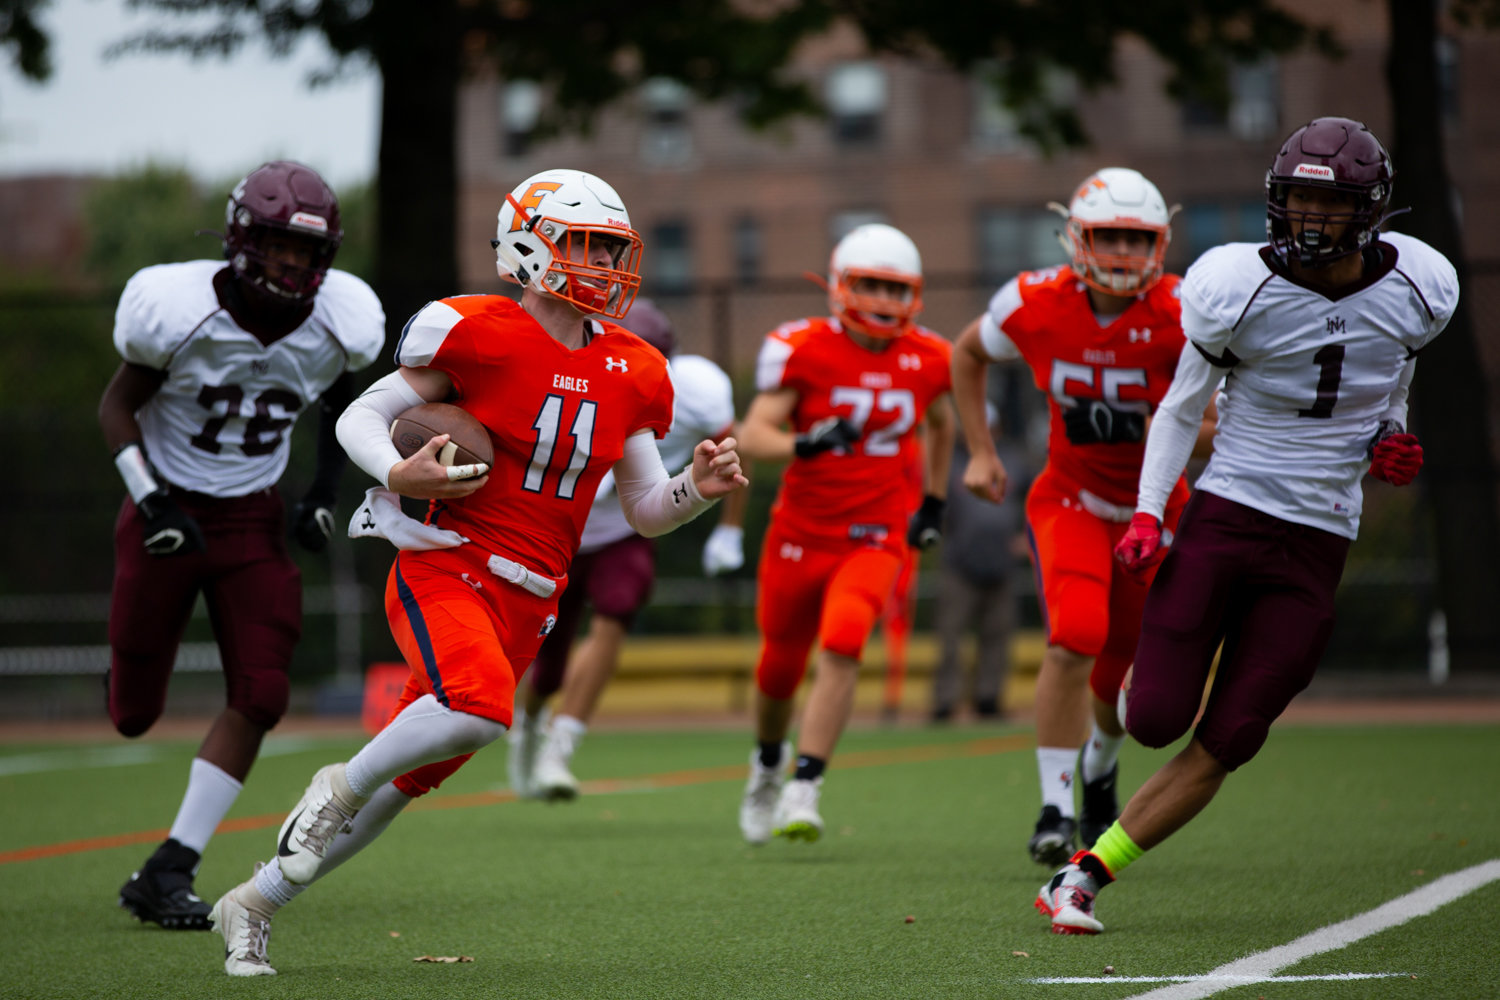 Fieldston's versatile junior Jake Horowitz cuts through Horace Mann's defense en route to one of his four touchdowns in the Eagles' 34-22 victory last Saturday.